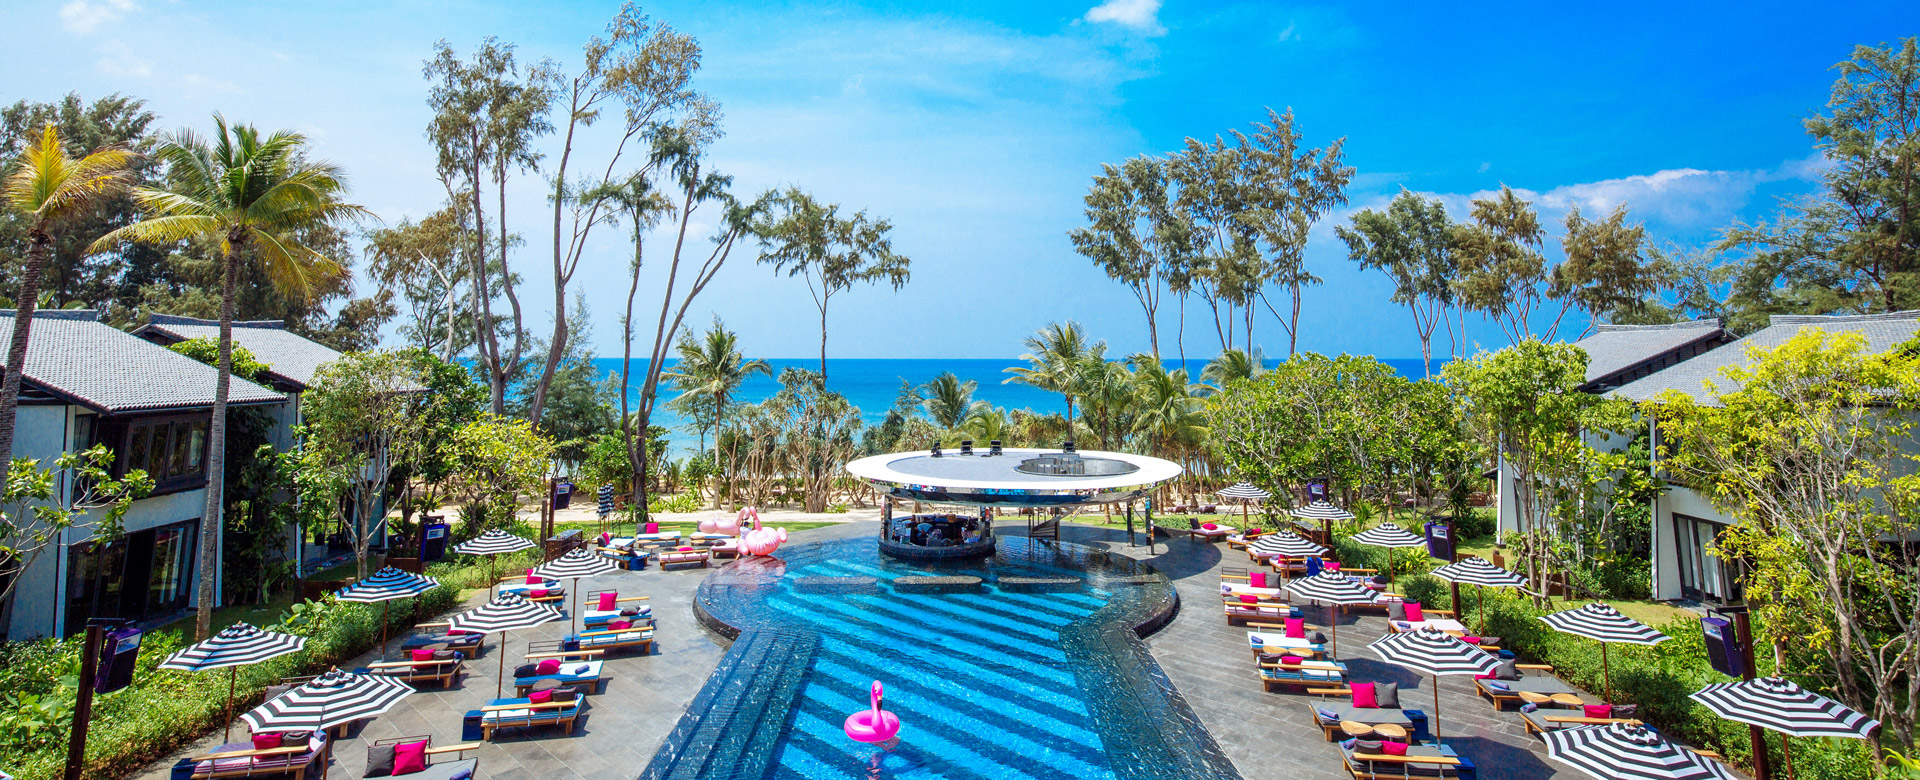 Baba Beach Club Phuket - Luxury Hotel Phuket